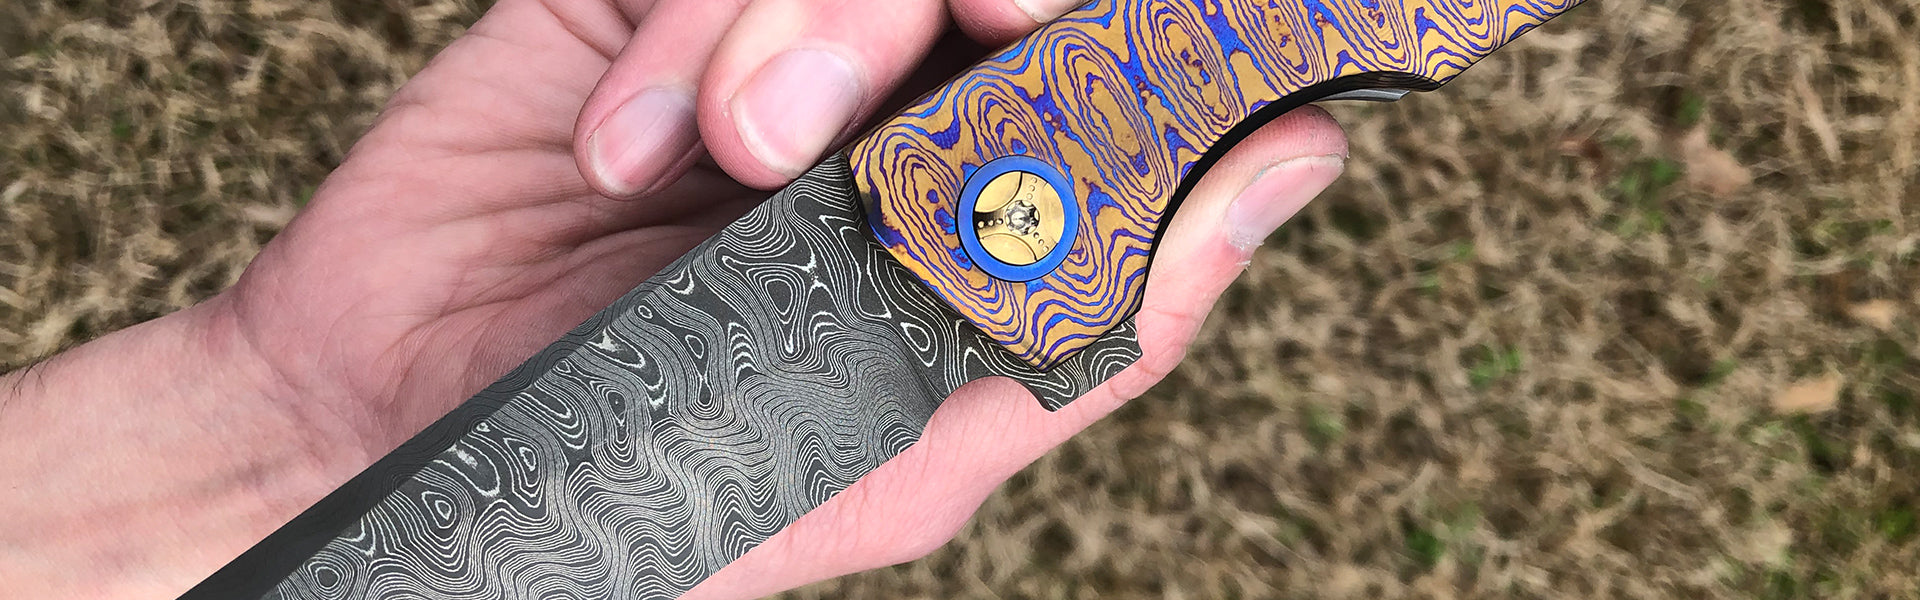 Brian Brown Knives